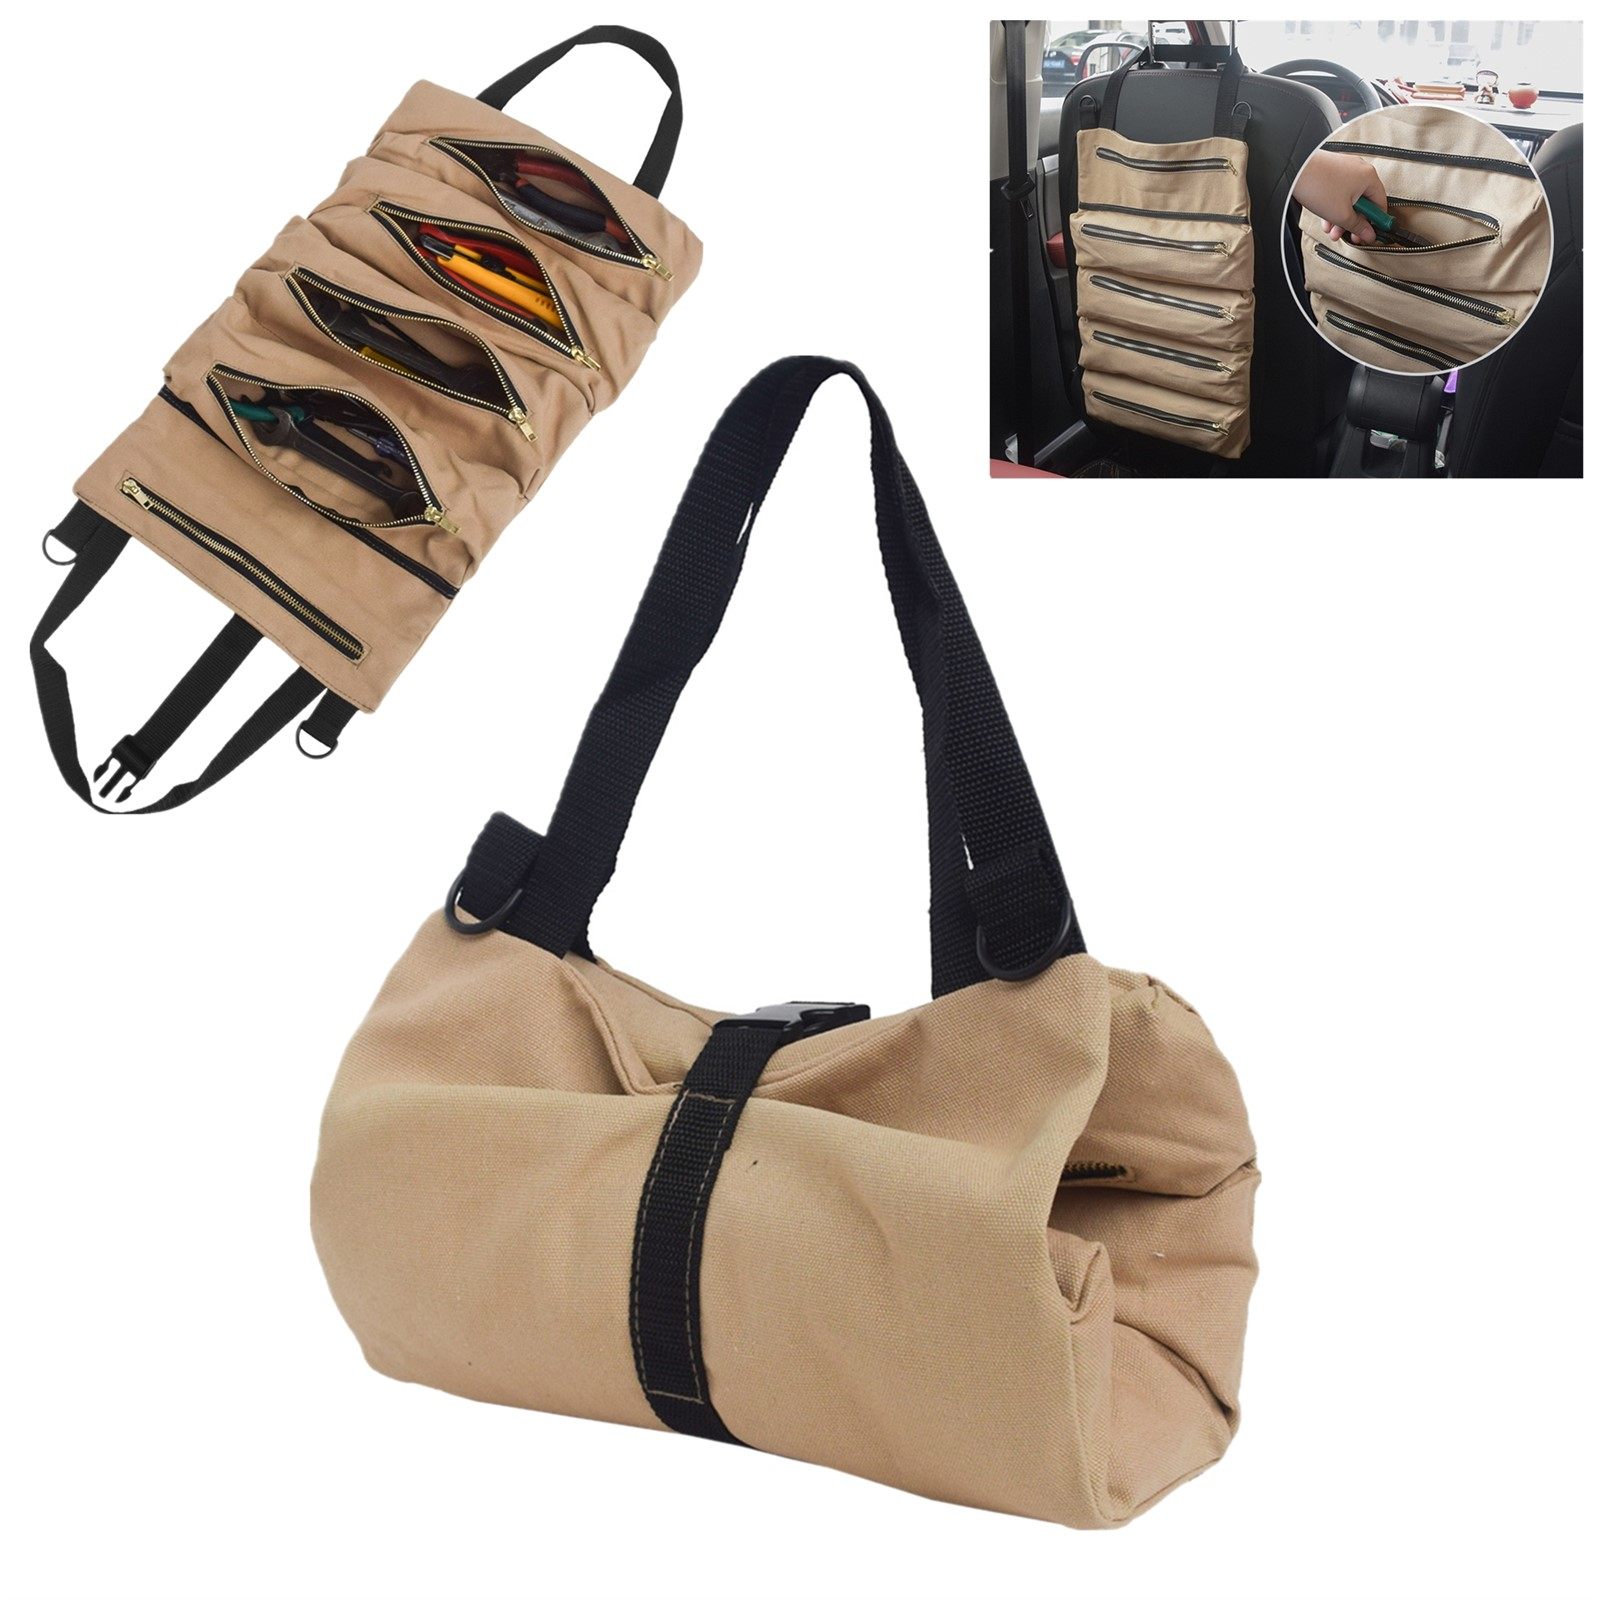 tool roll up bag waxed canvas pouch